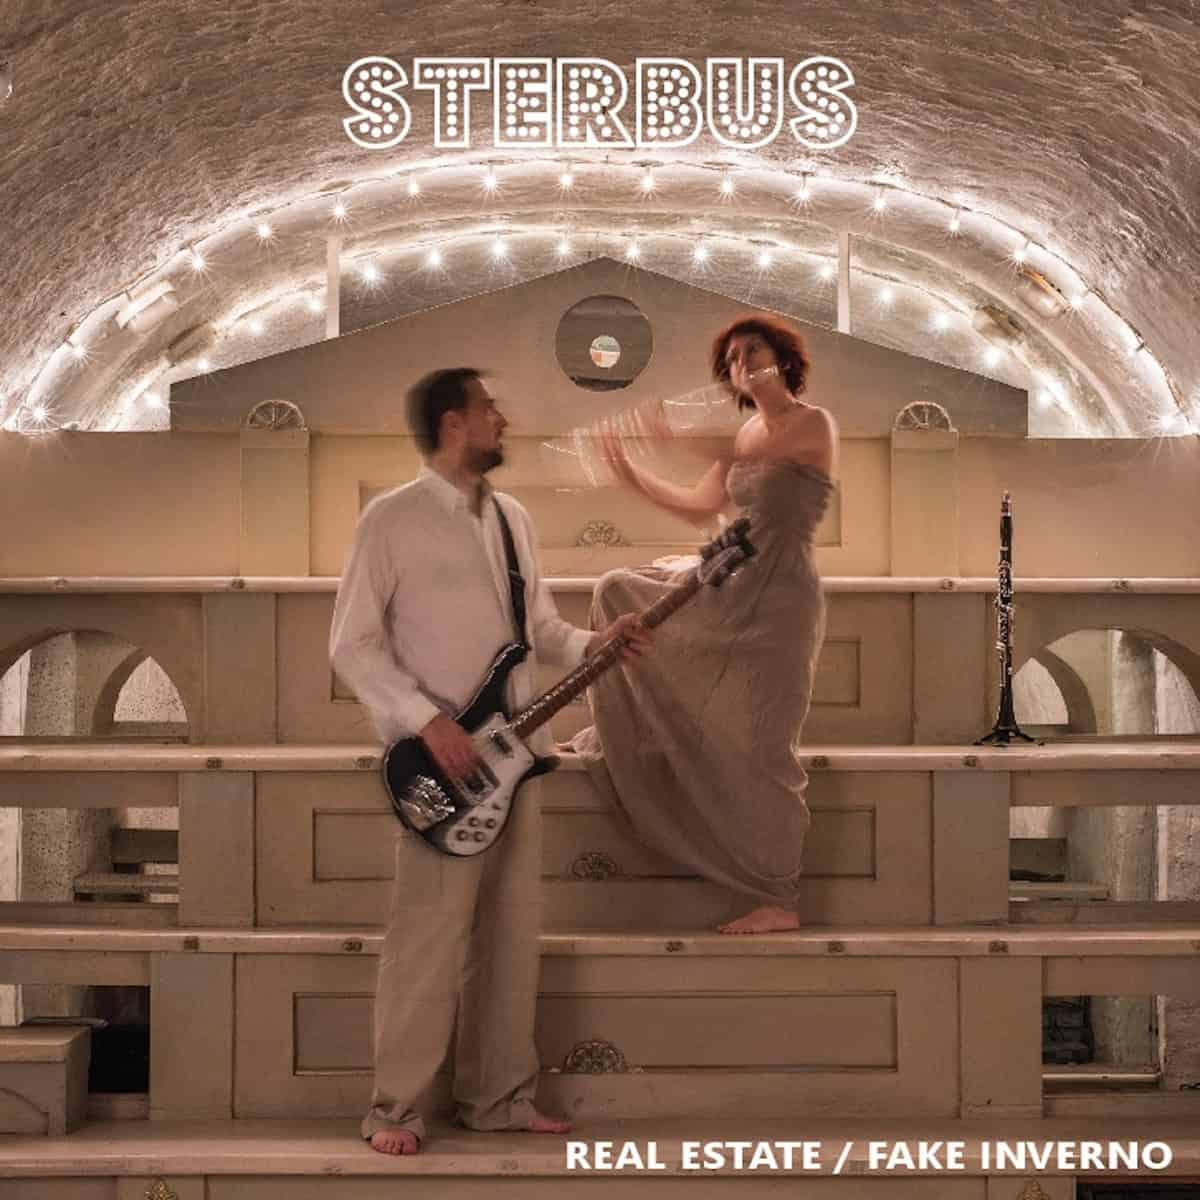 New album by Sterbus, 'Real Estate/Fake Inverno' released today